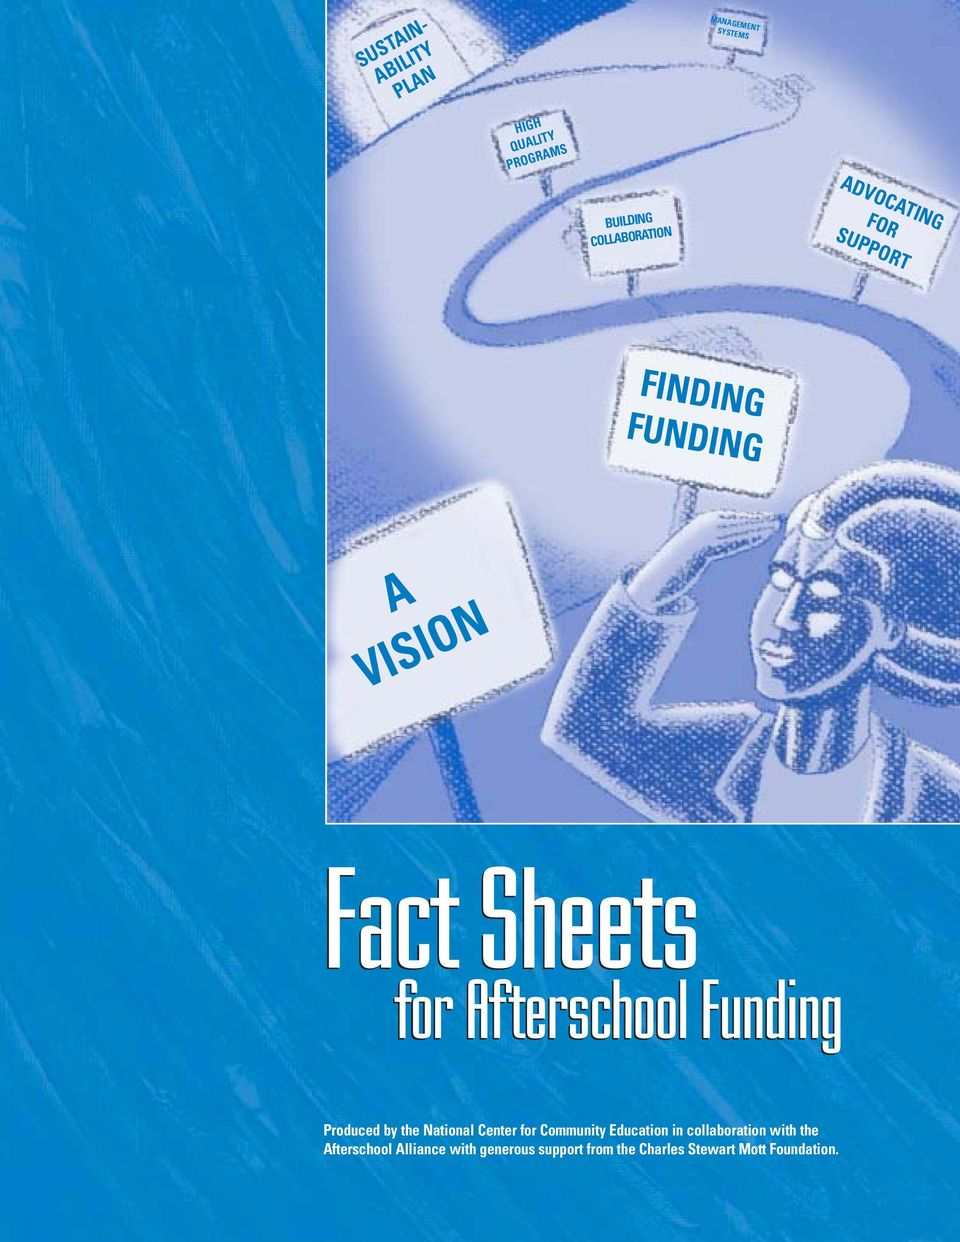 Afterschool Funding Produced by the National Center for Community Education in